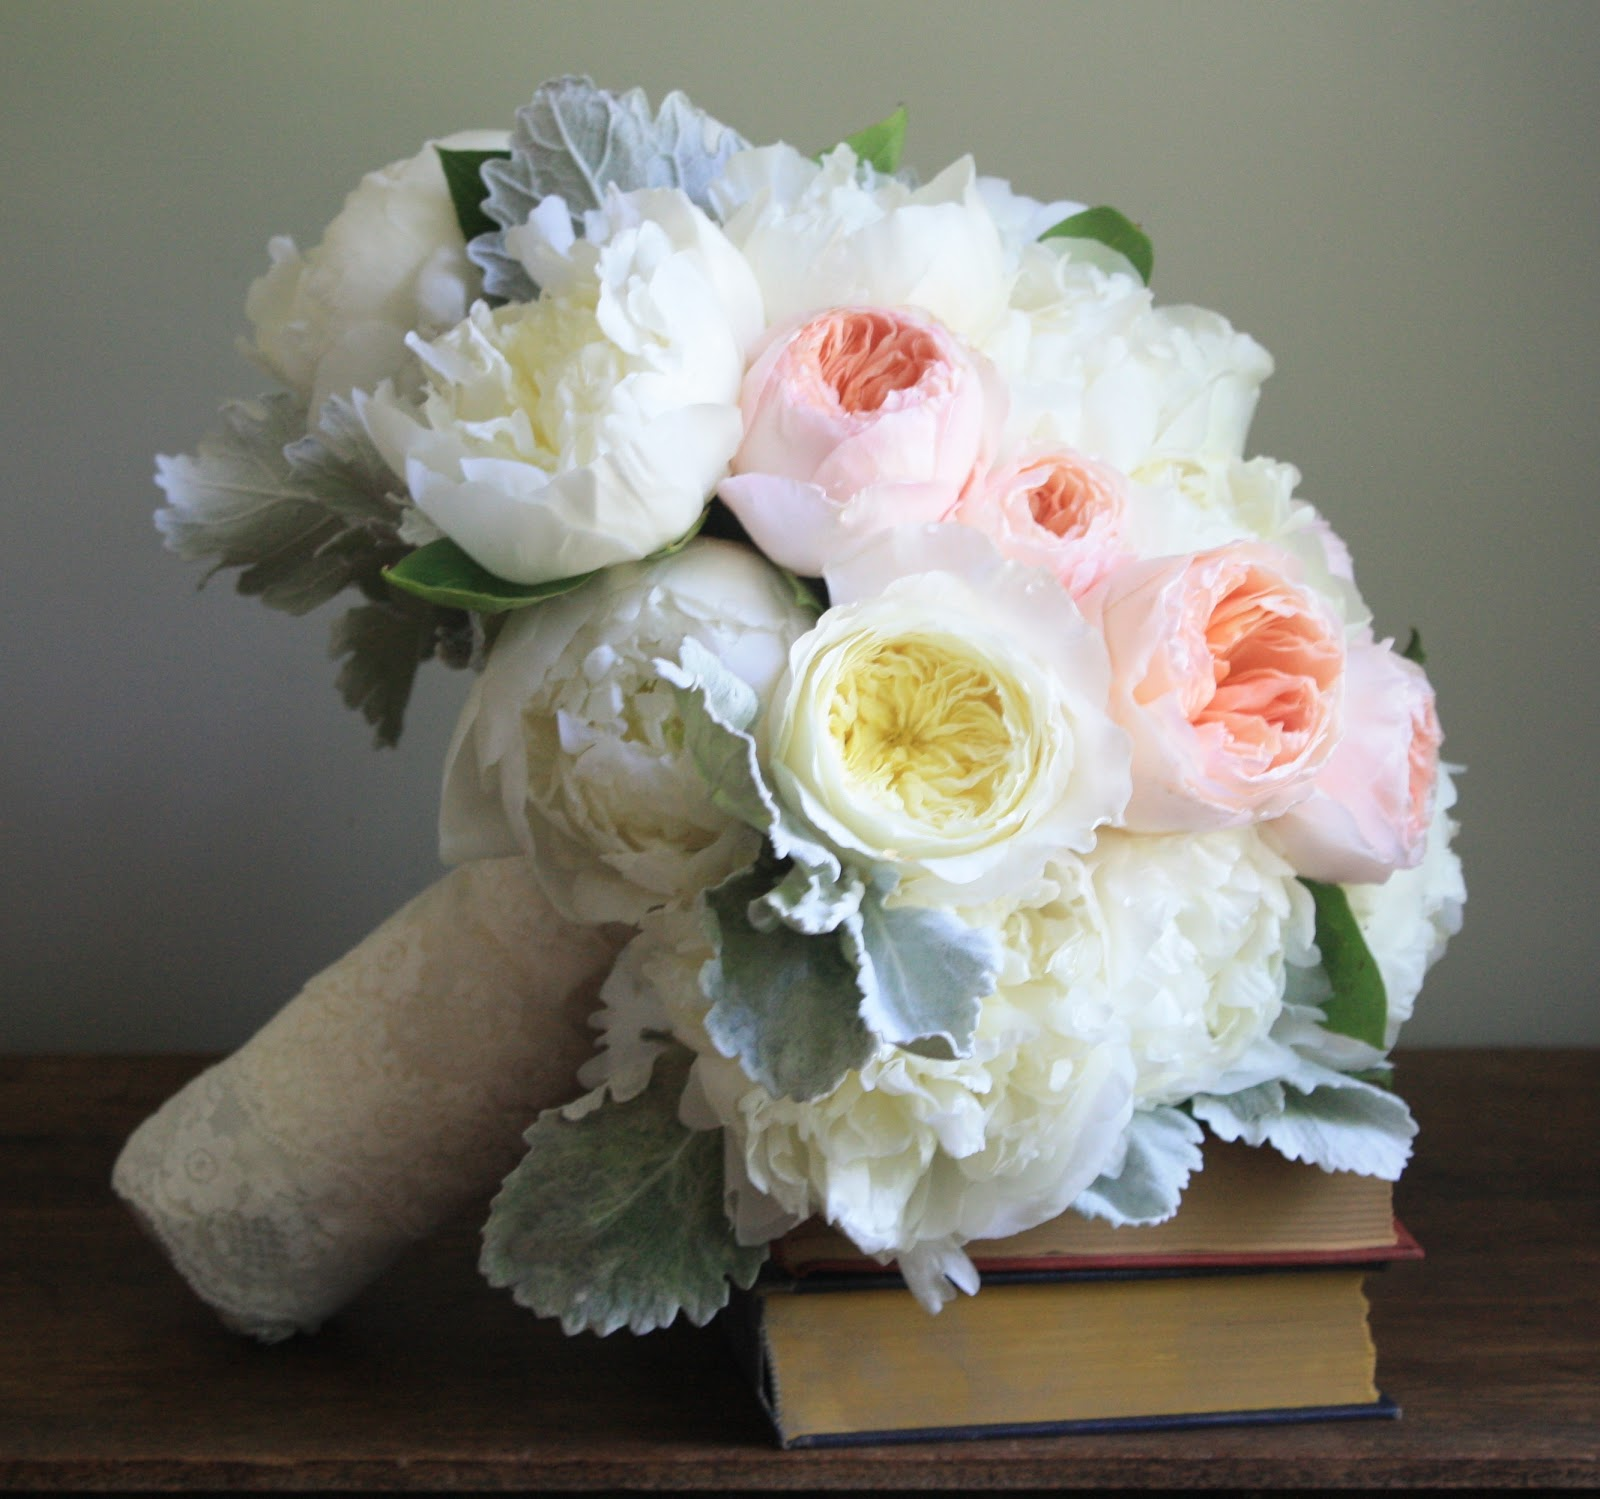 Garden Rose & Peony Bouquet, Garden Rose Bouquet, David Austin Rose Bouquet, Juliet Garden Rose, Patience Garden Rose, Rose Bridal Bouquet, Rose Bouquet, Wedding Bouquet - Splendid Stems Wedding Flowers - Wedding Florist